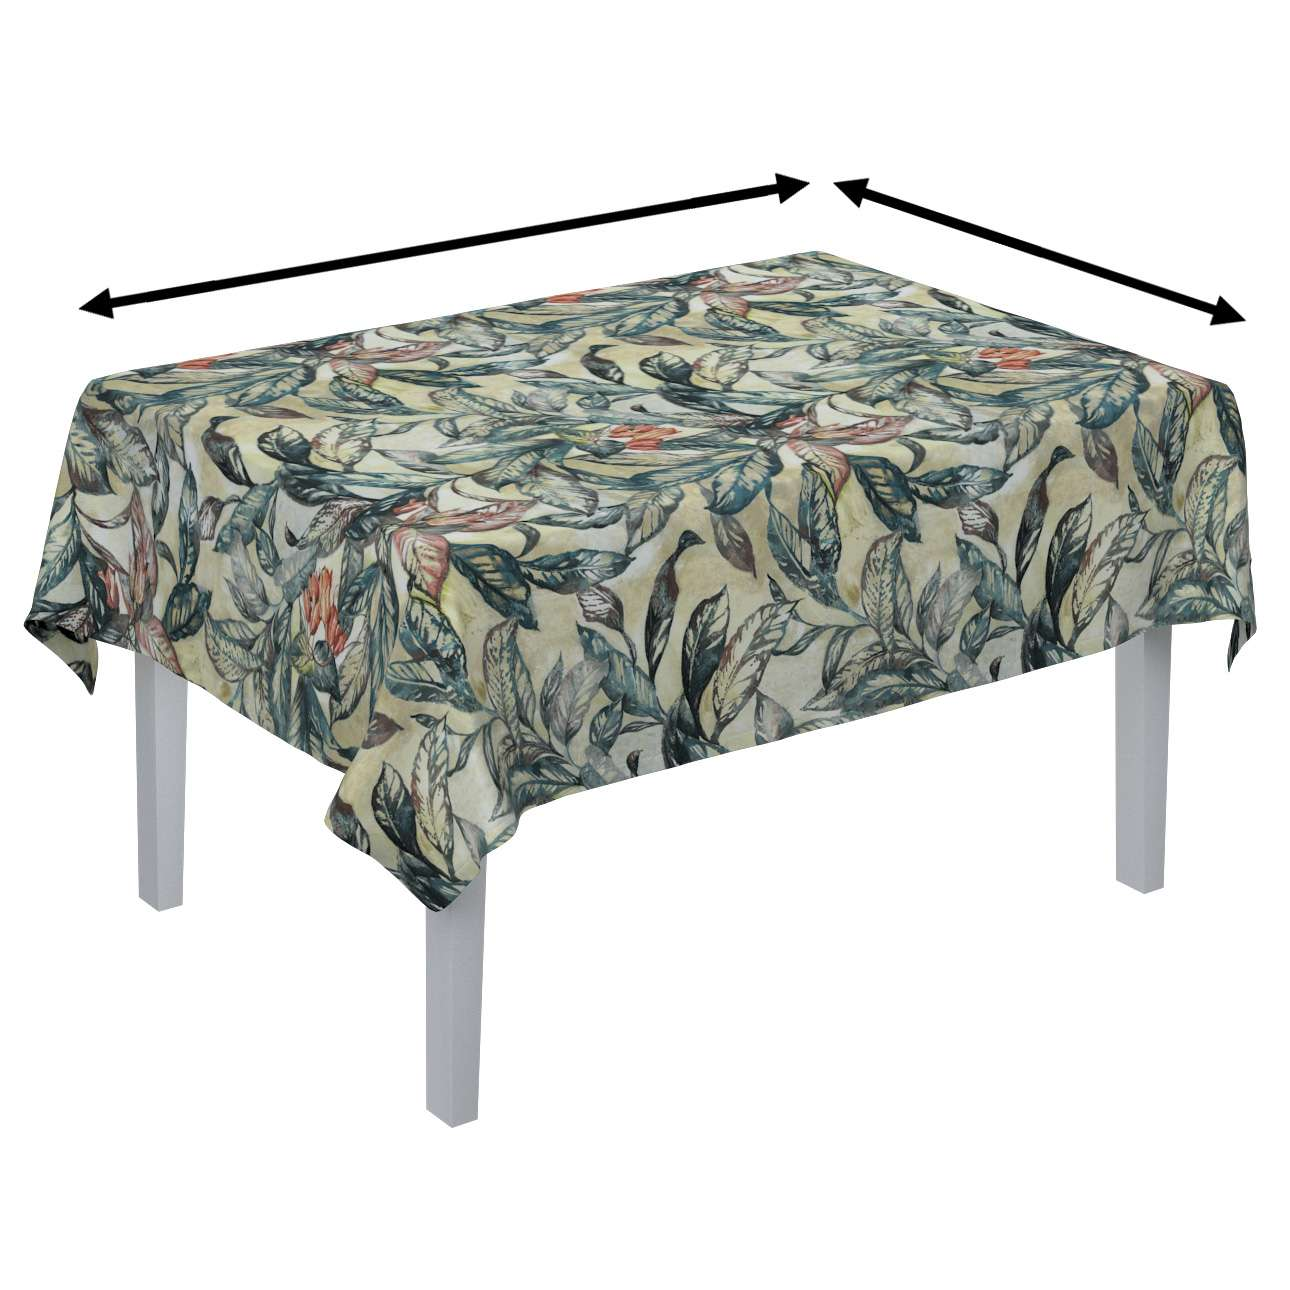 Rectangular tablecloth in collection Abigail, fabric: 143-08